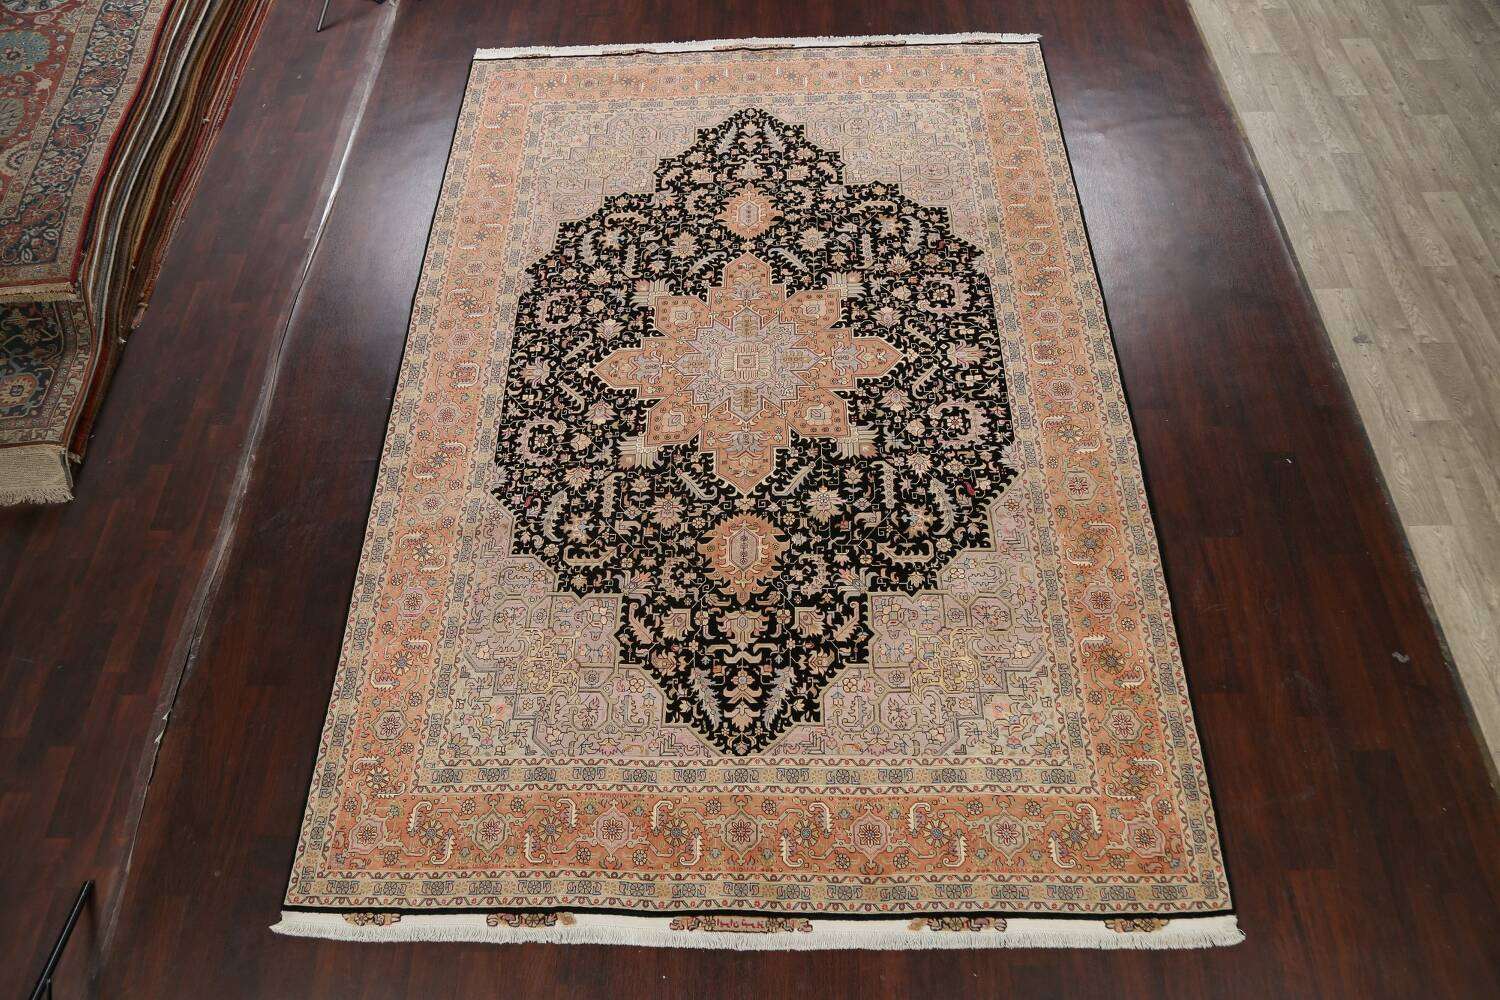 100% Vegetable Dye Tabriz Signed Persian Area Rug 8x12 image 2